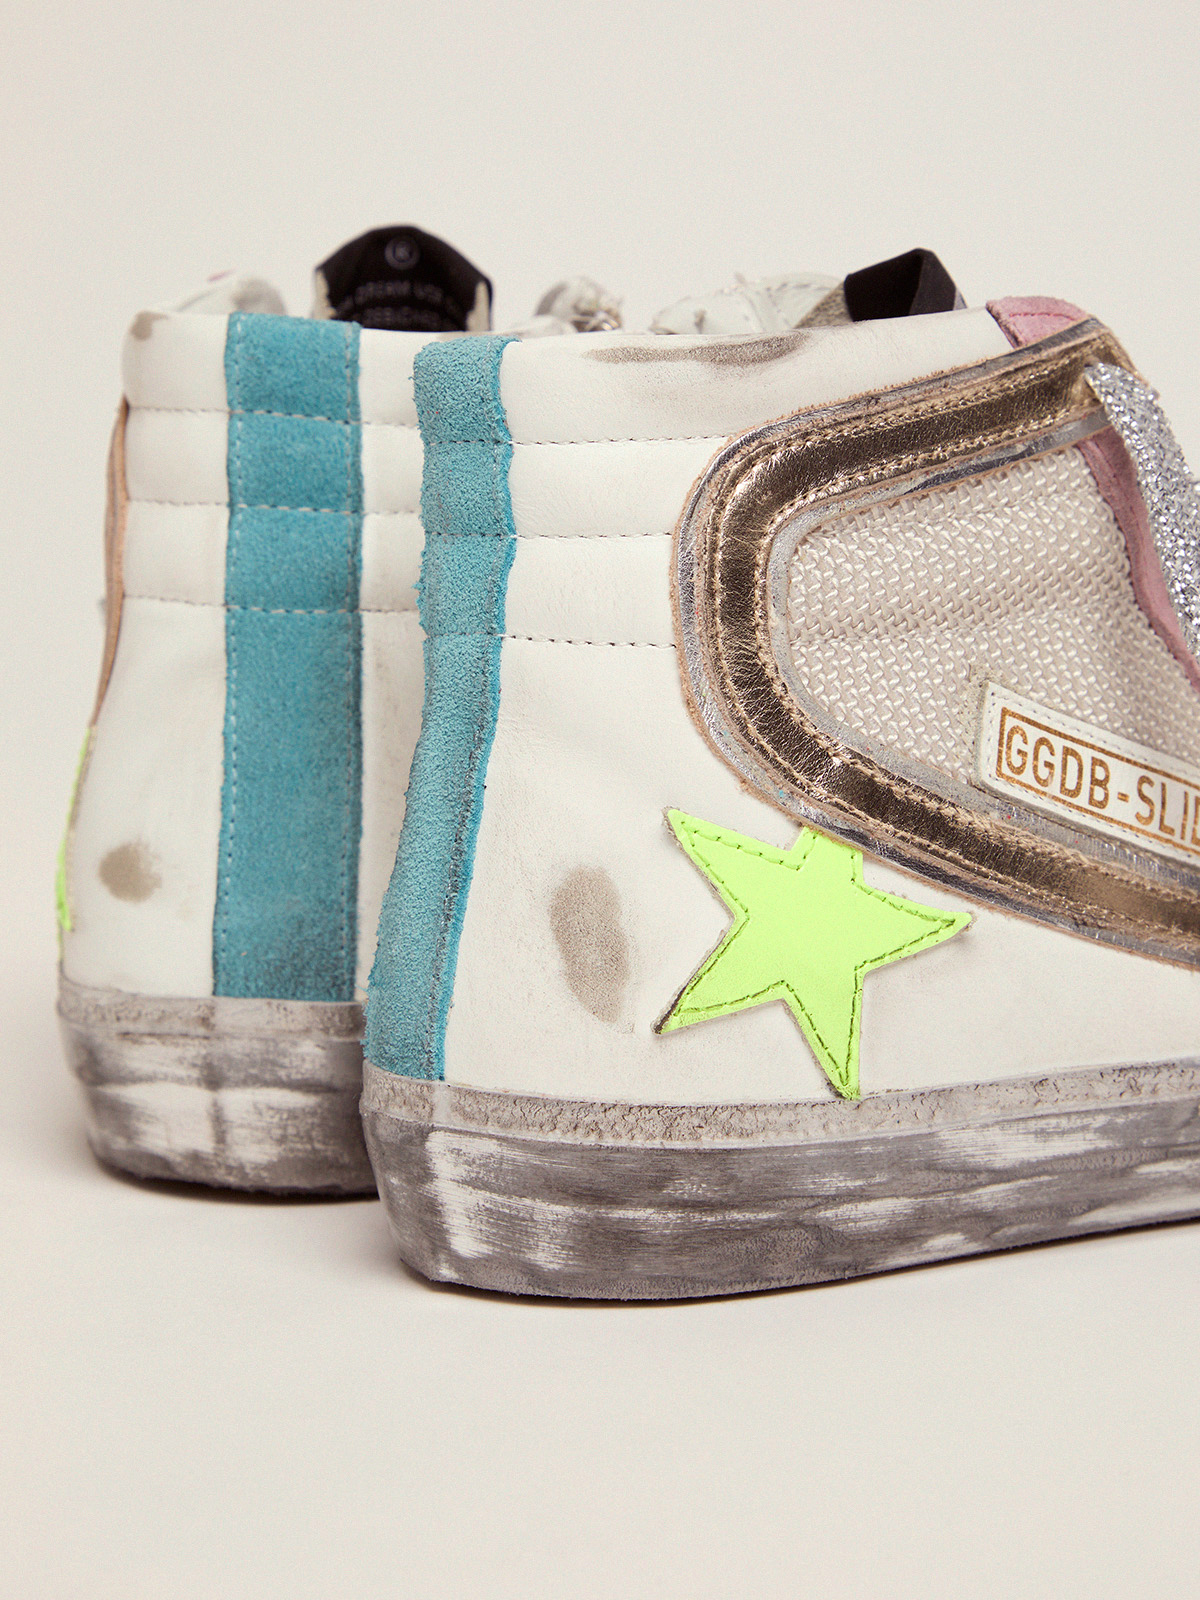 Golden Goose - Slide sneakers with white and pink upper in